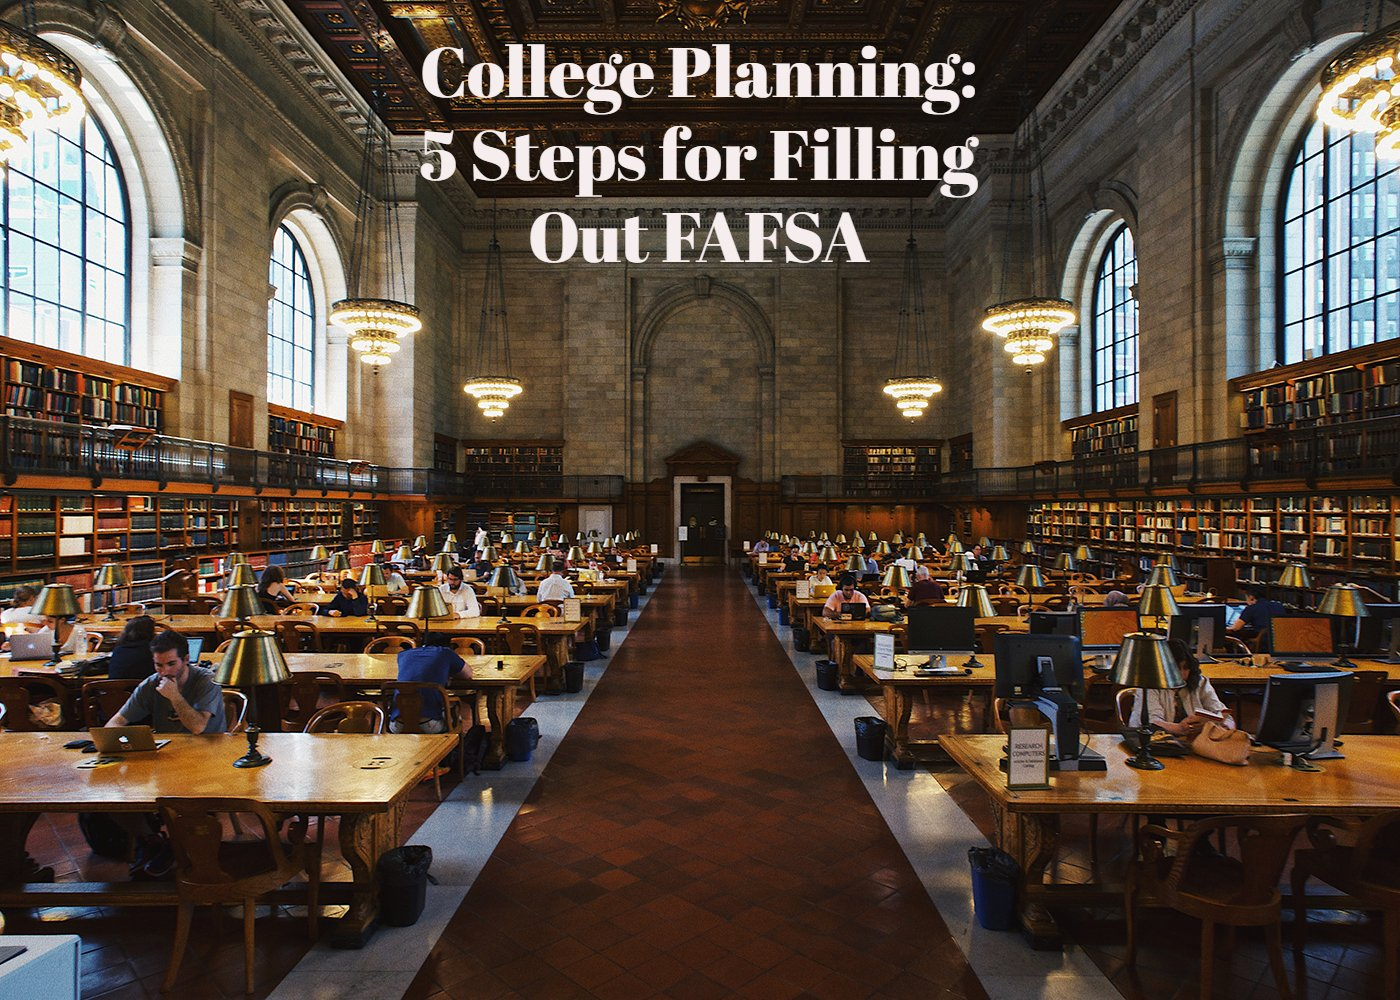 college planning: 5 steps for Filling Out FAFSA